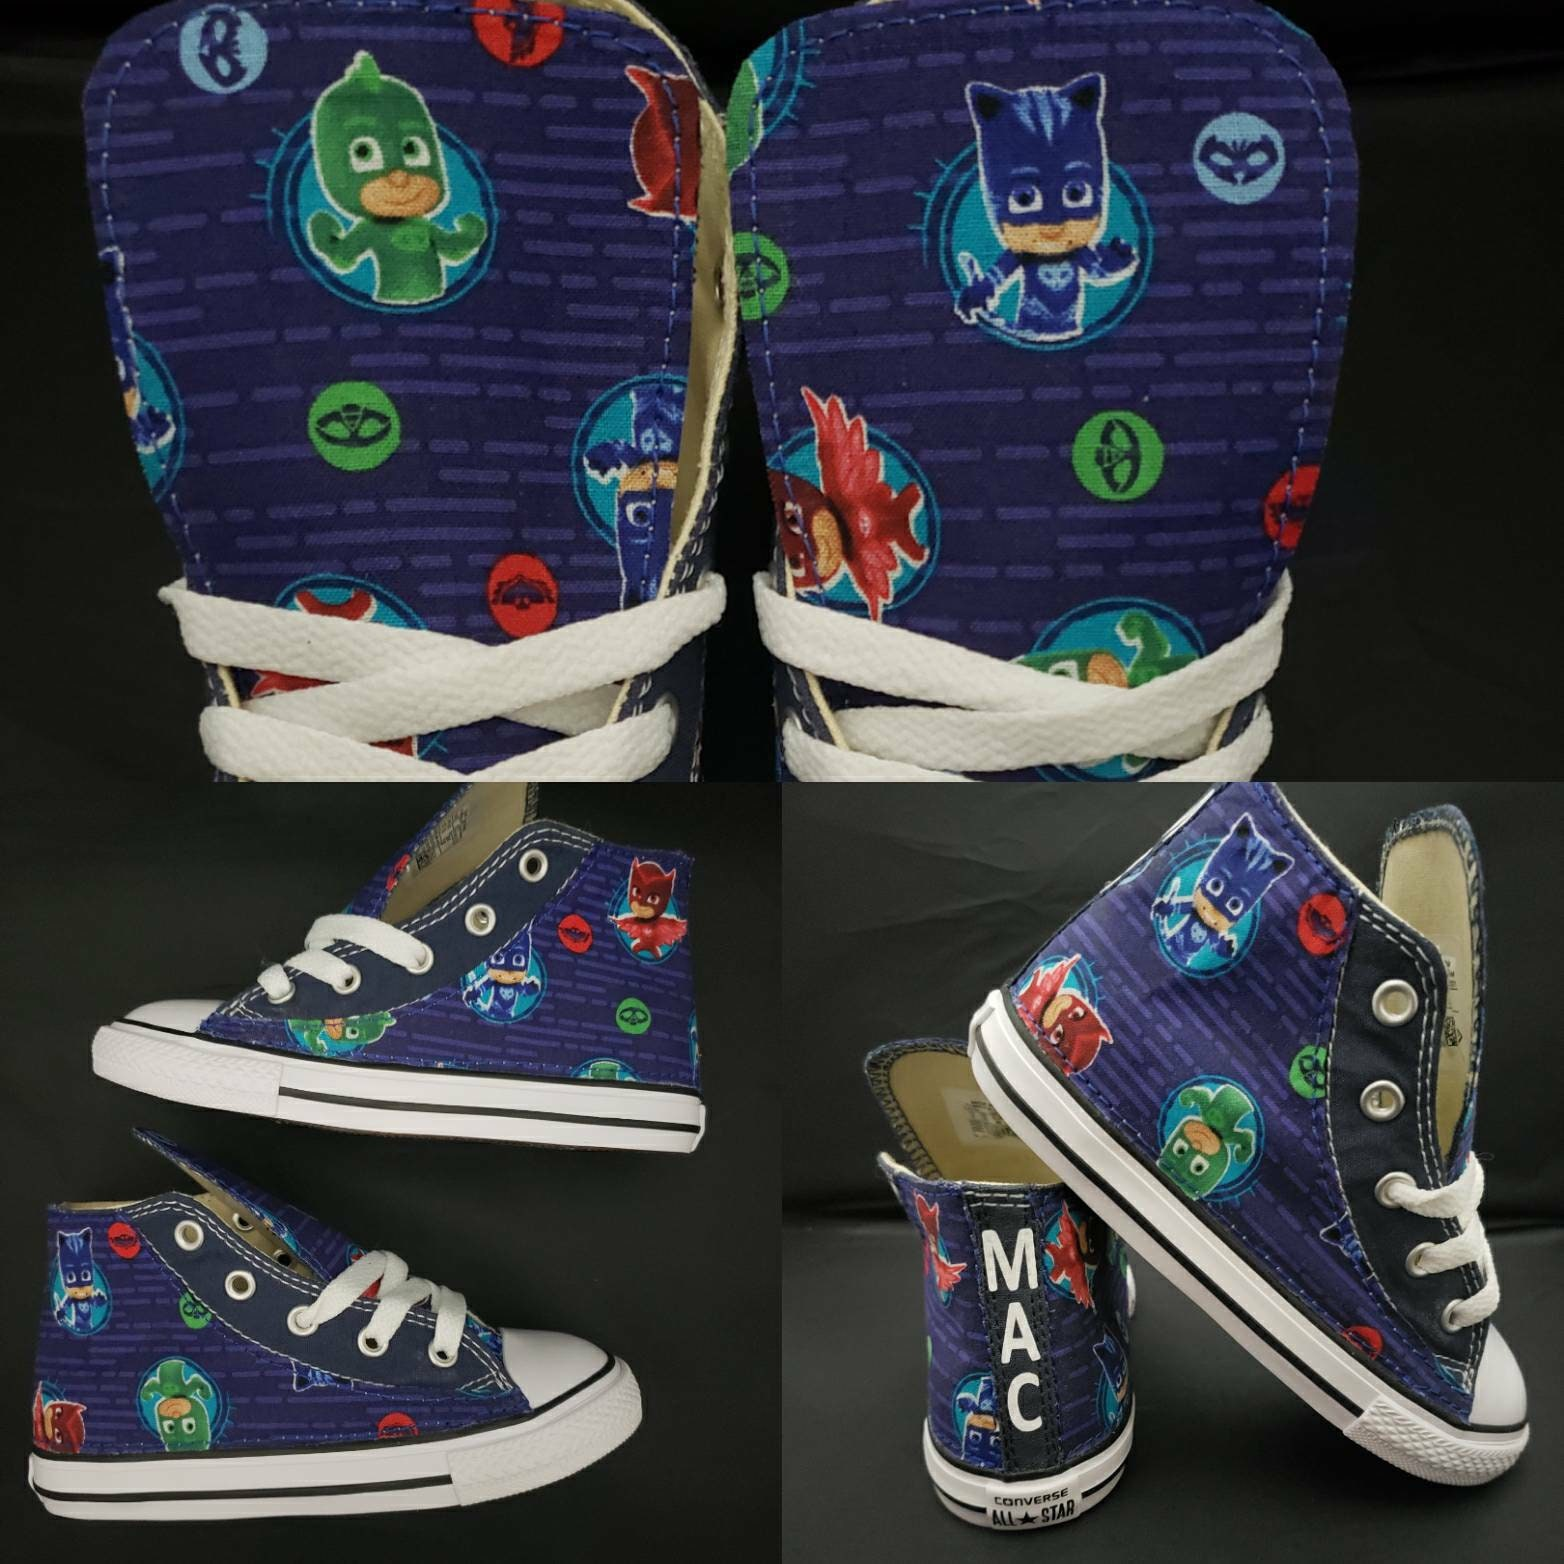 Details about Converse all star Boys Shoes Size 3 M Blue Fabric Low Top